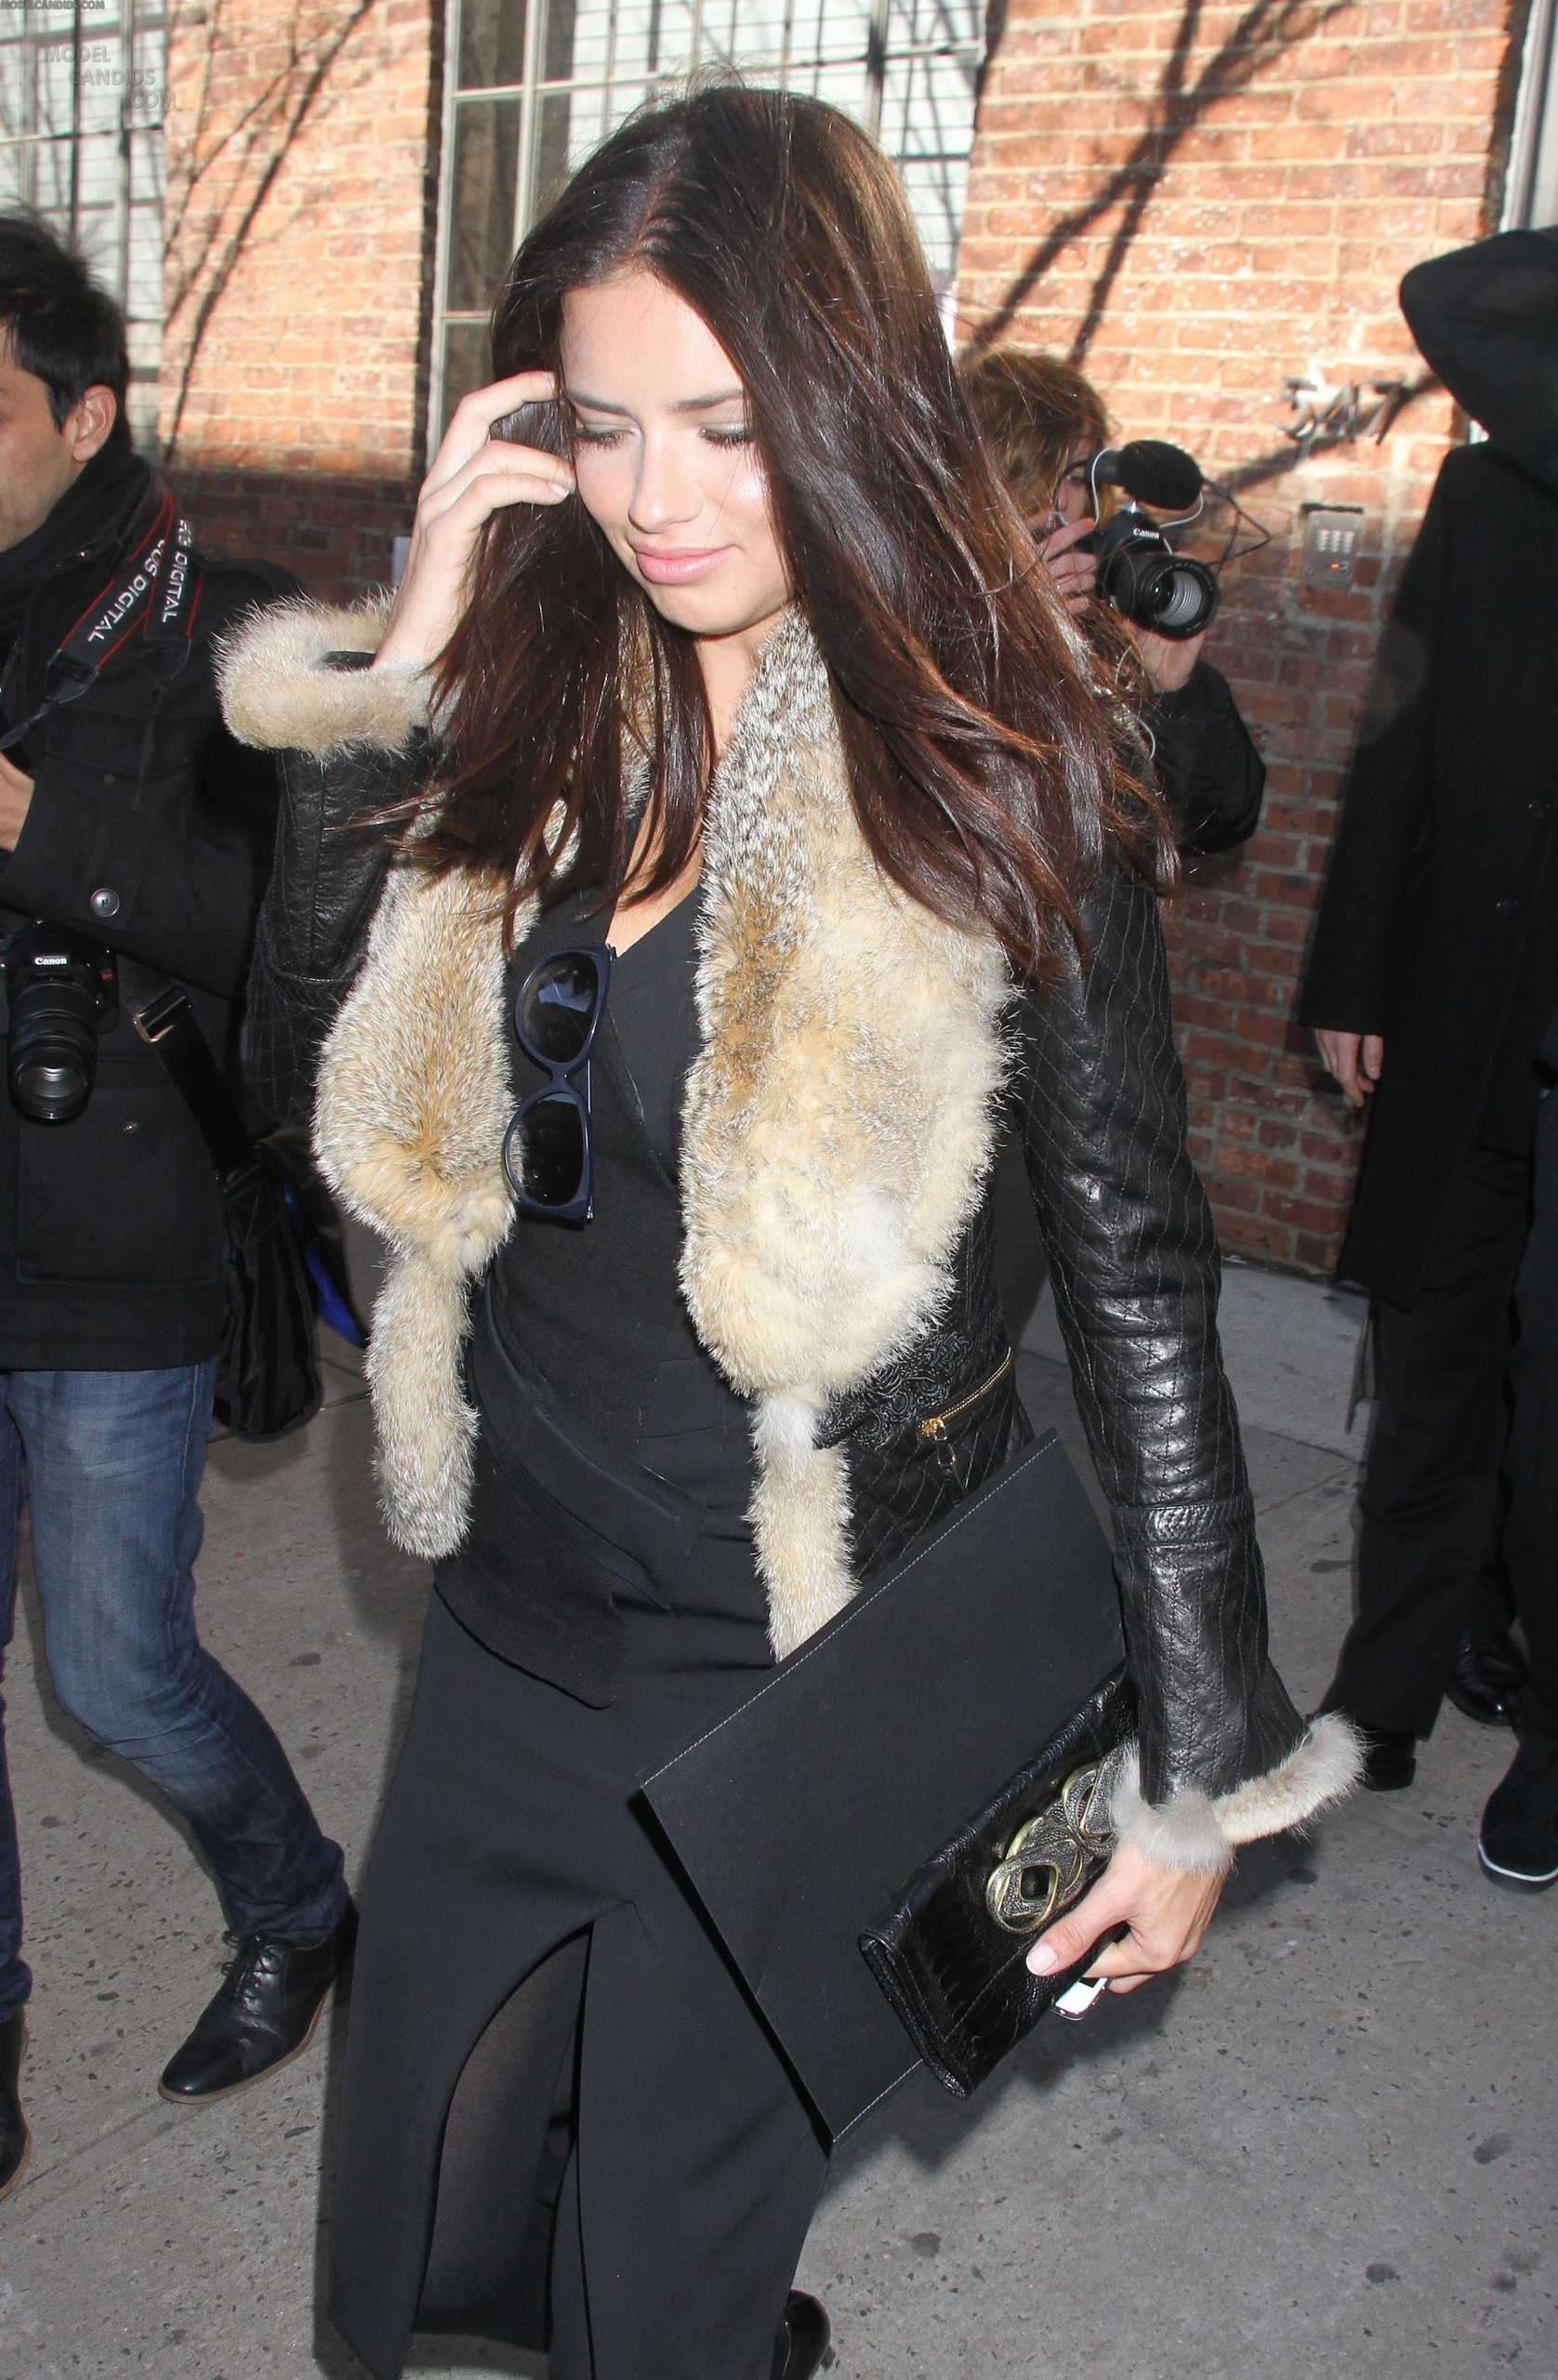 Adriana Lima attends the Donna Karan दिखाना during Fashion Week in New York, Feb. 13, 2012